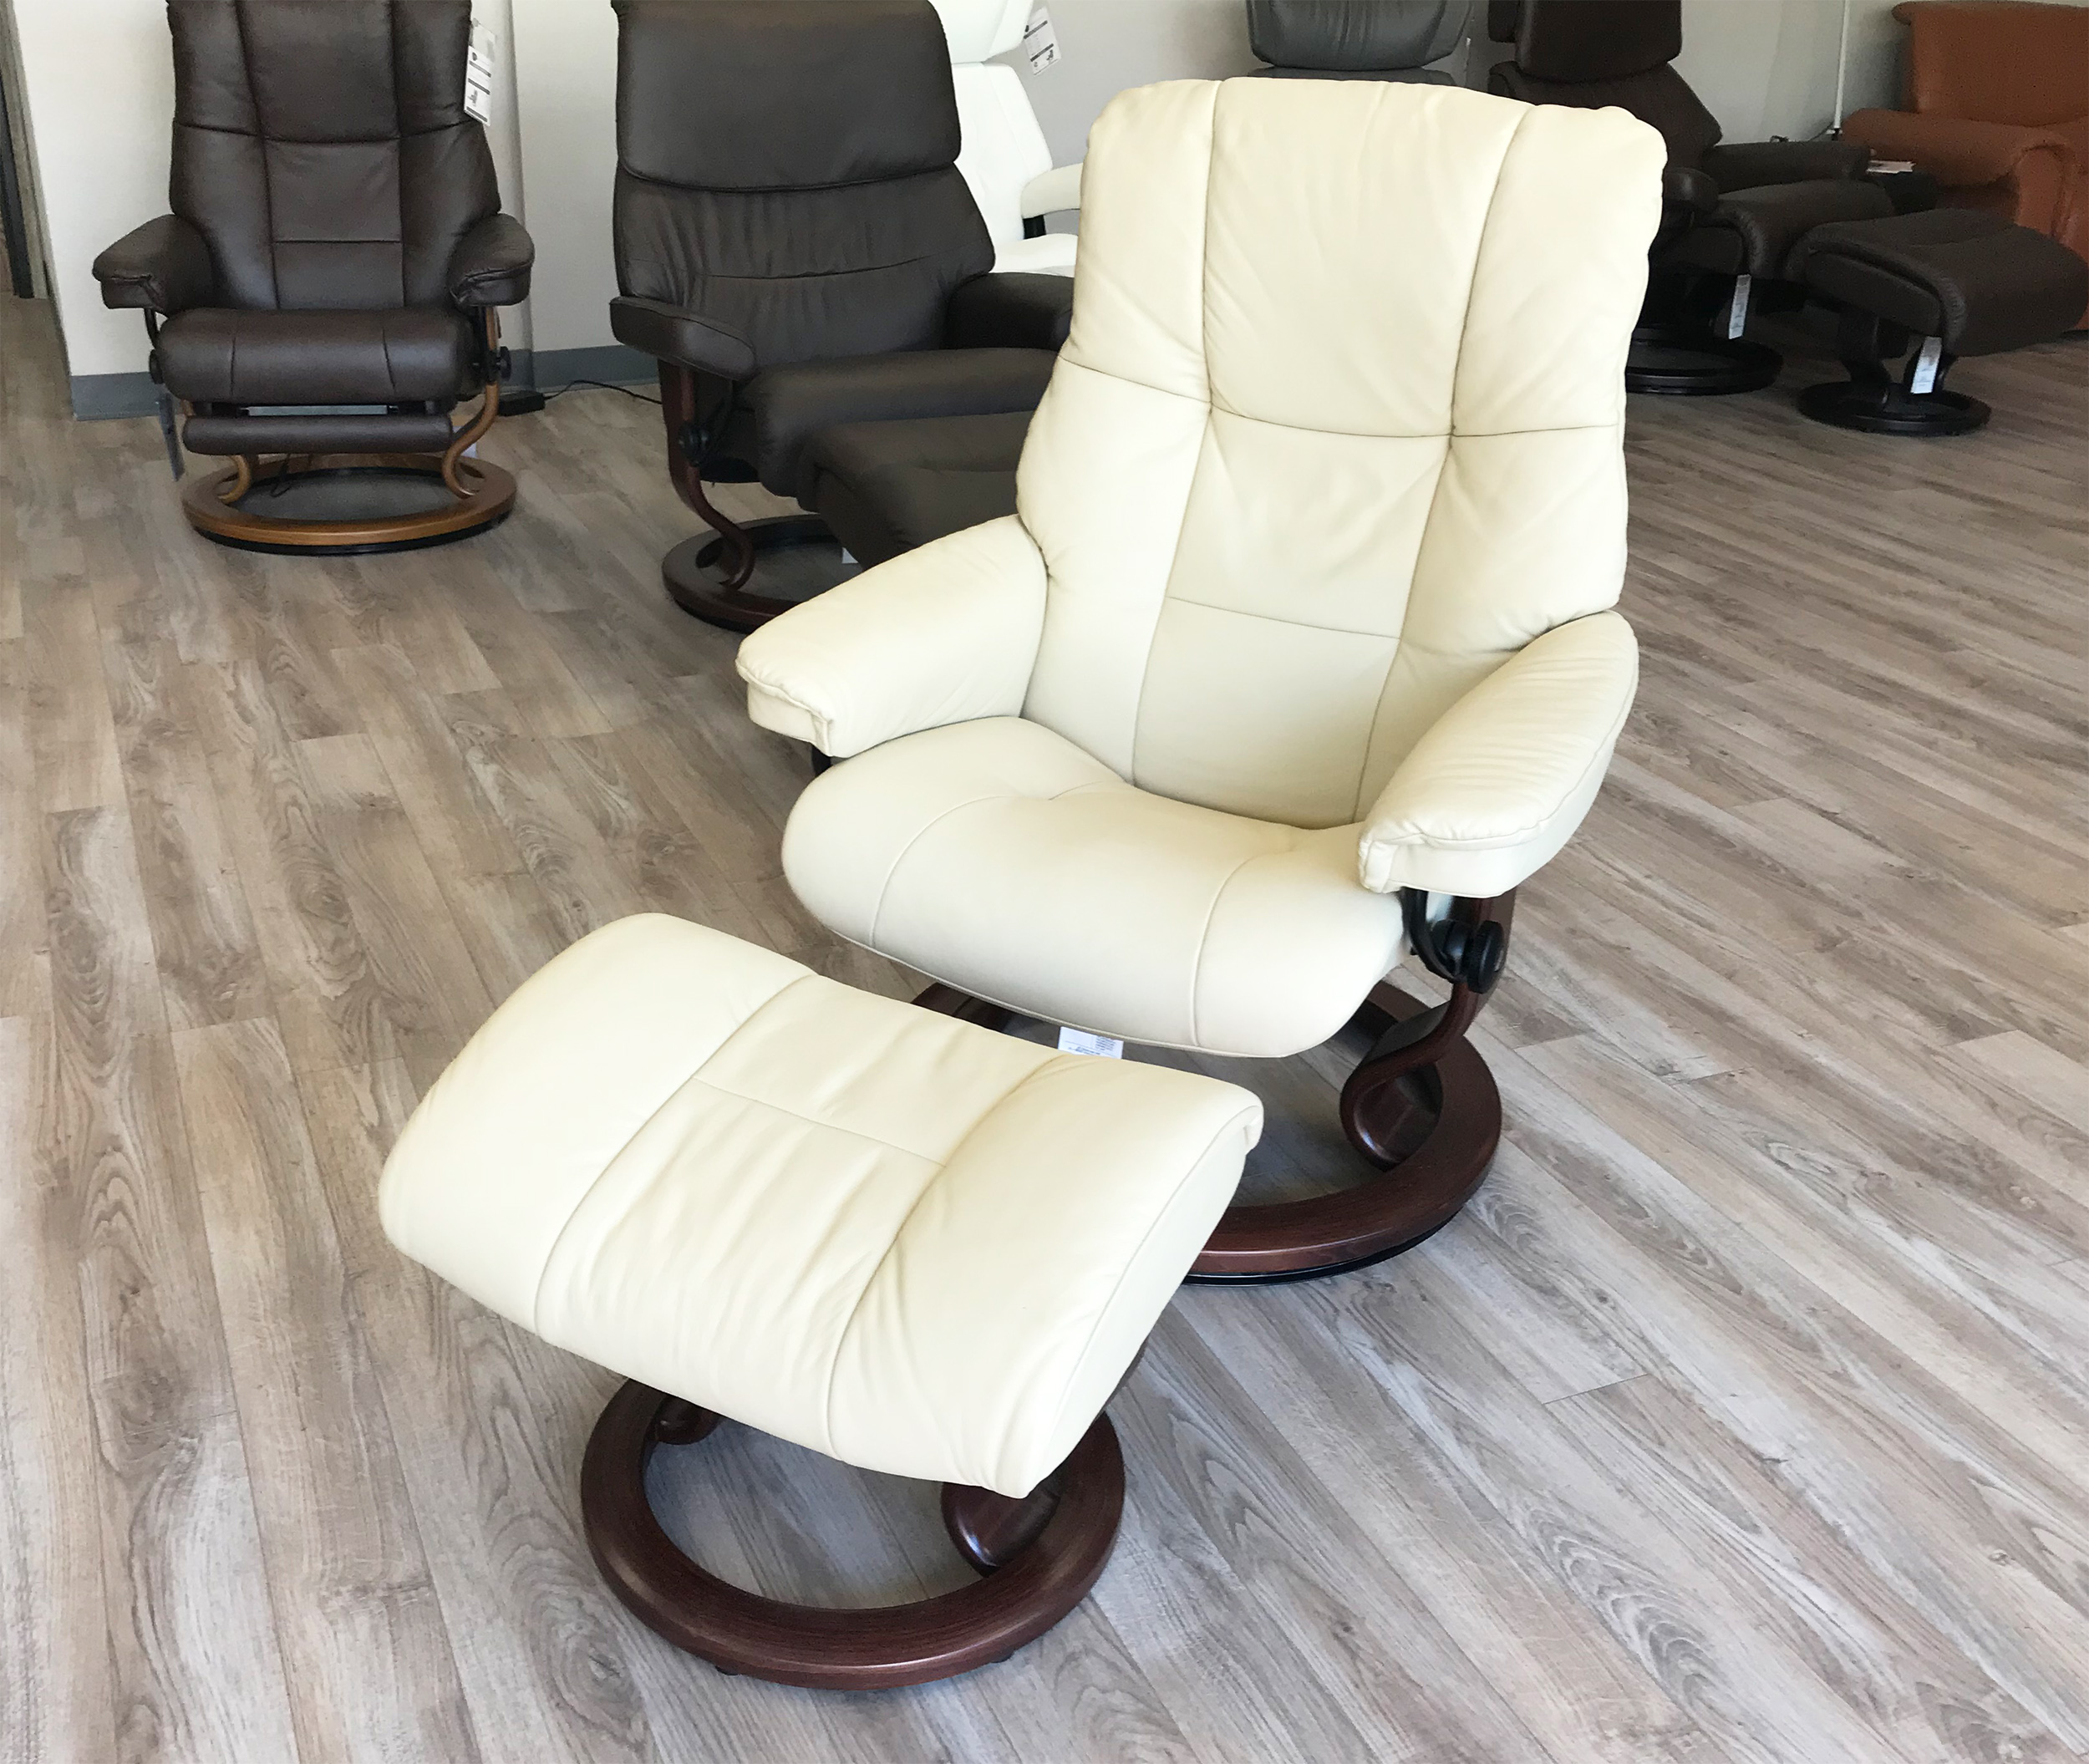 Leather Recliner Chair With Ottoman Stressless Chelsea Small Mayfair Paloma Kitt Leather Recliner Chair And Ottoman By Ekornes